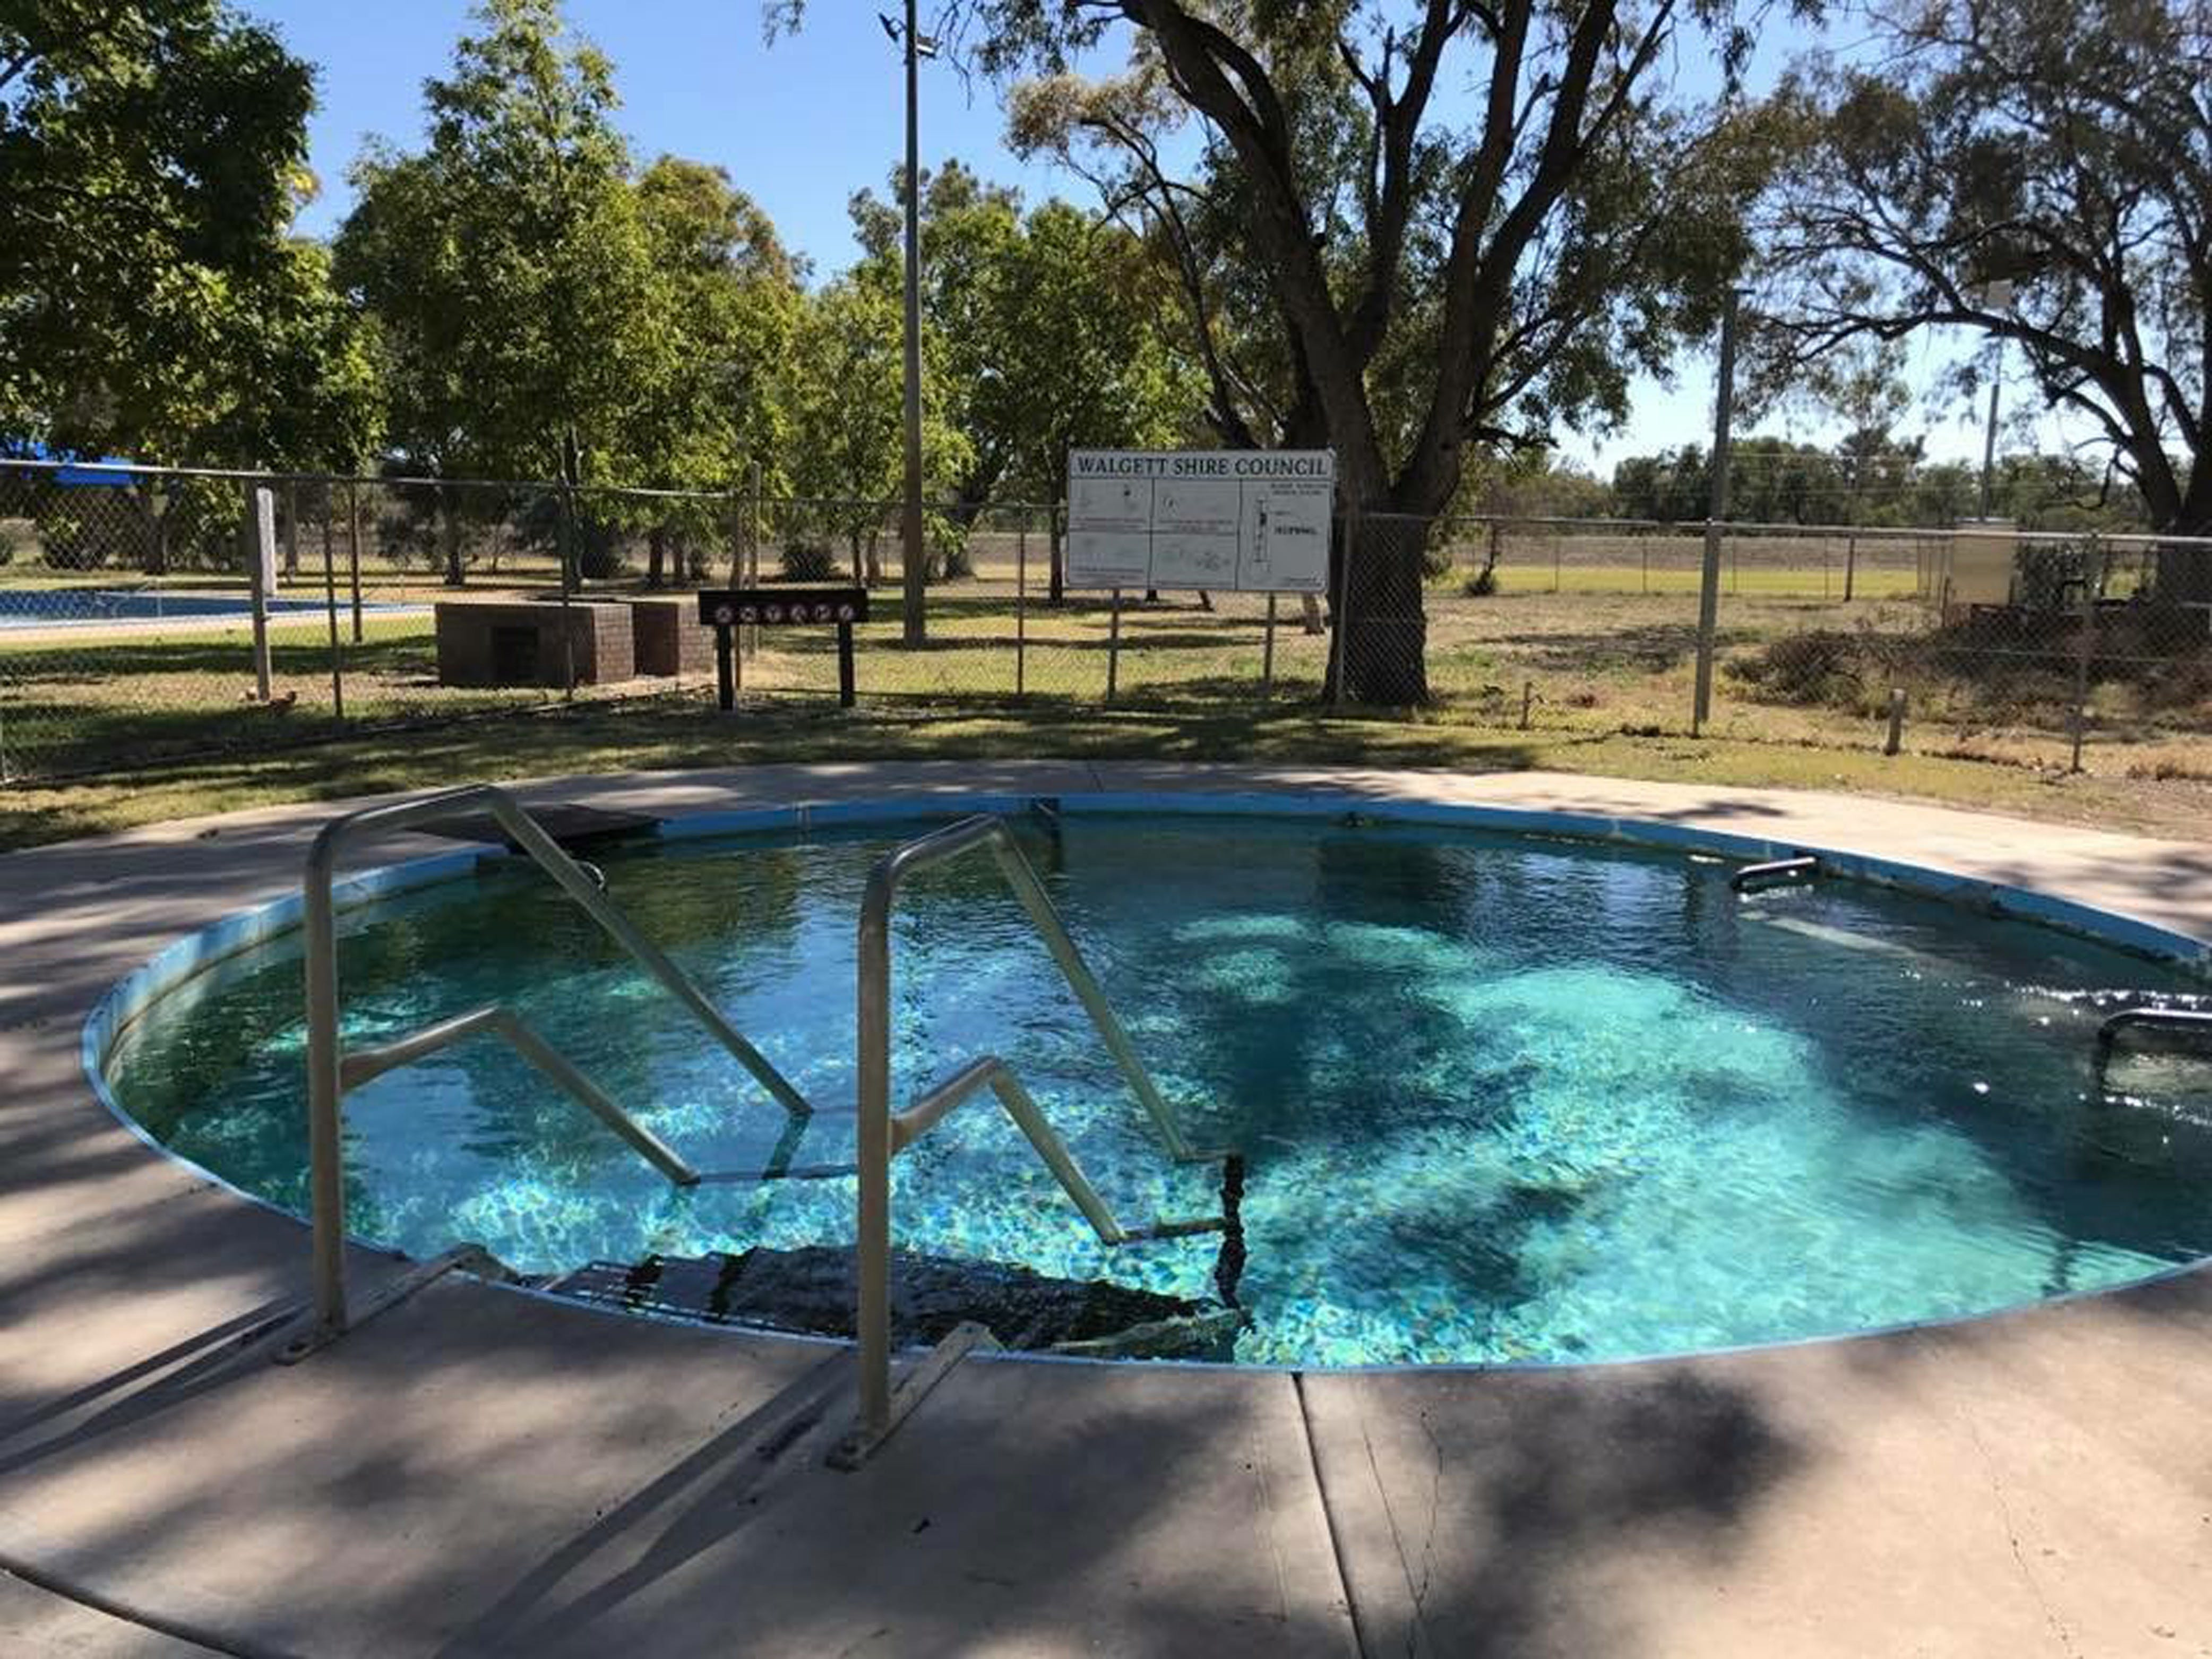 Walgett Artesian Bore Baths - Accommodation Rockhampton